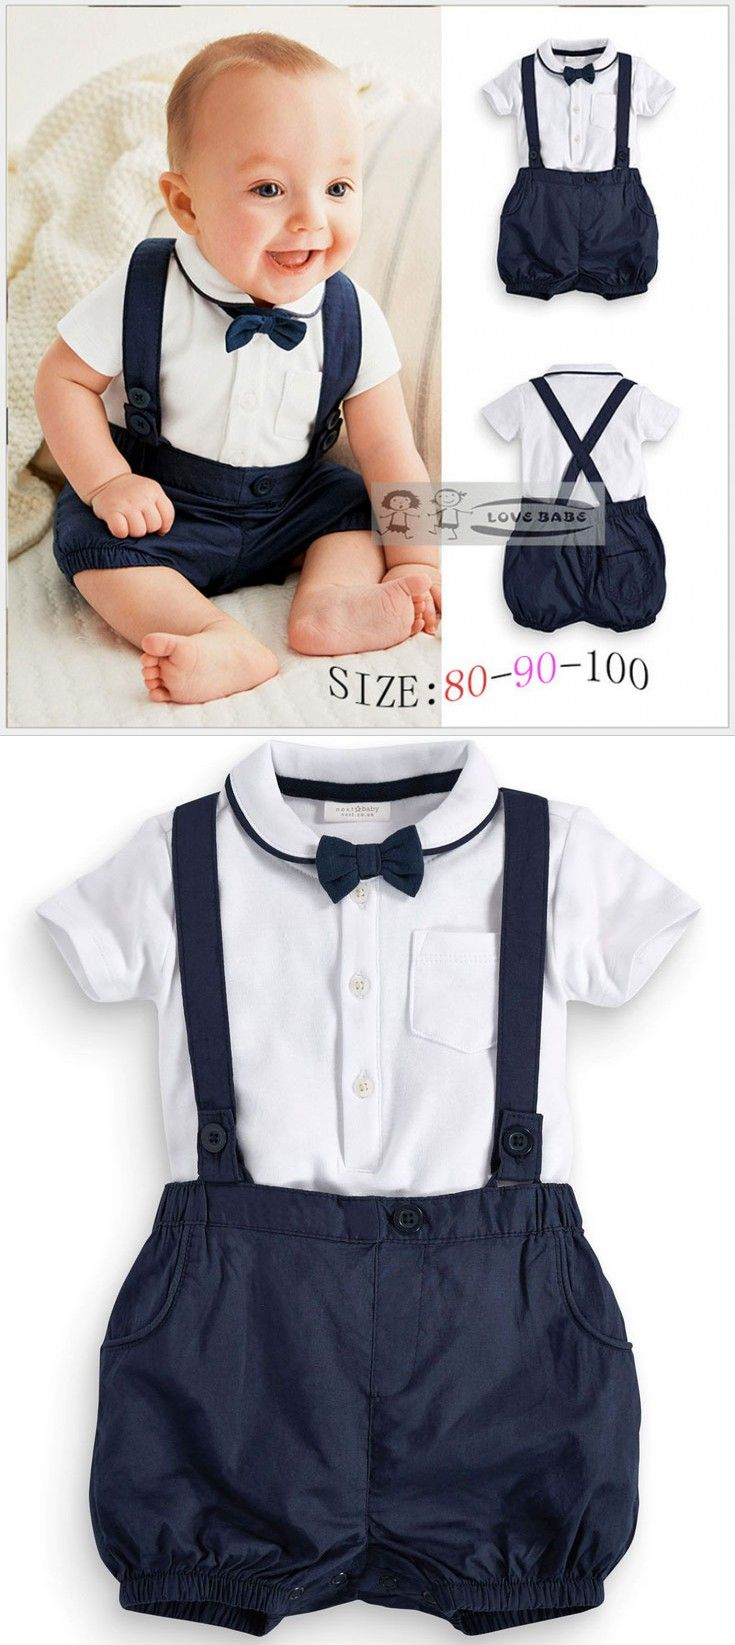 a8b51985cb5 Summer Baby Clothing Cotton 2pcs Suit Short Infant Boy Gentleman Suspender  Gift Sets For Newborns Christening Suits For Boys